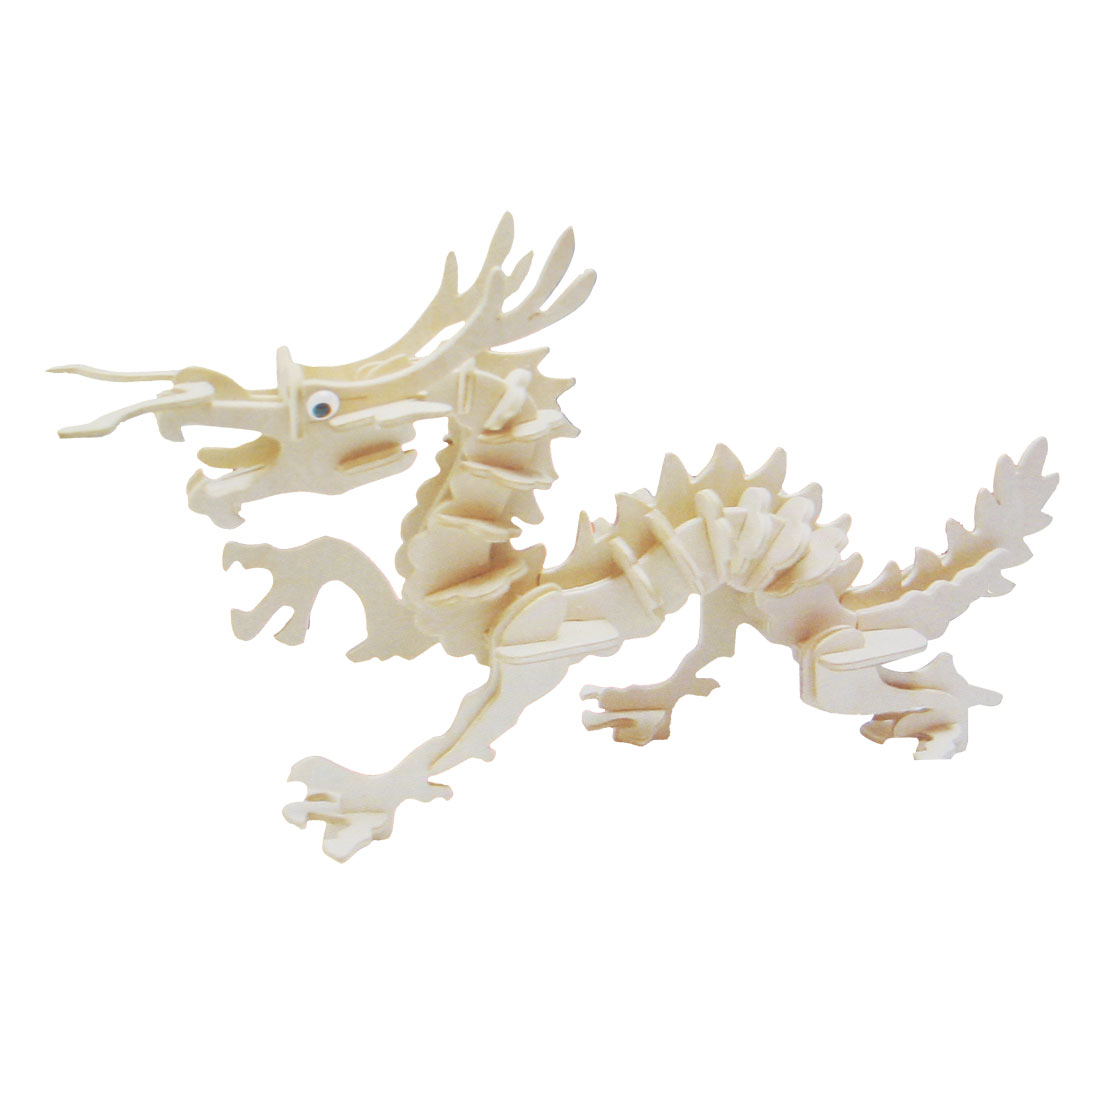 Educational DIY 3D Dargon Wooden Jigsaw Assemble Puzzle Toy